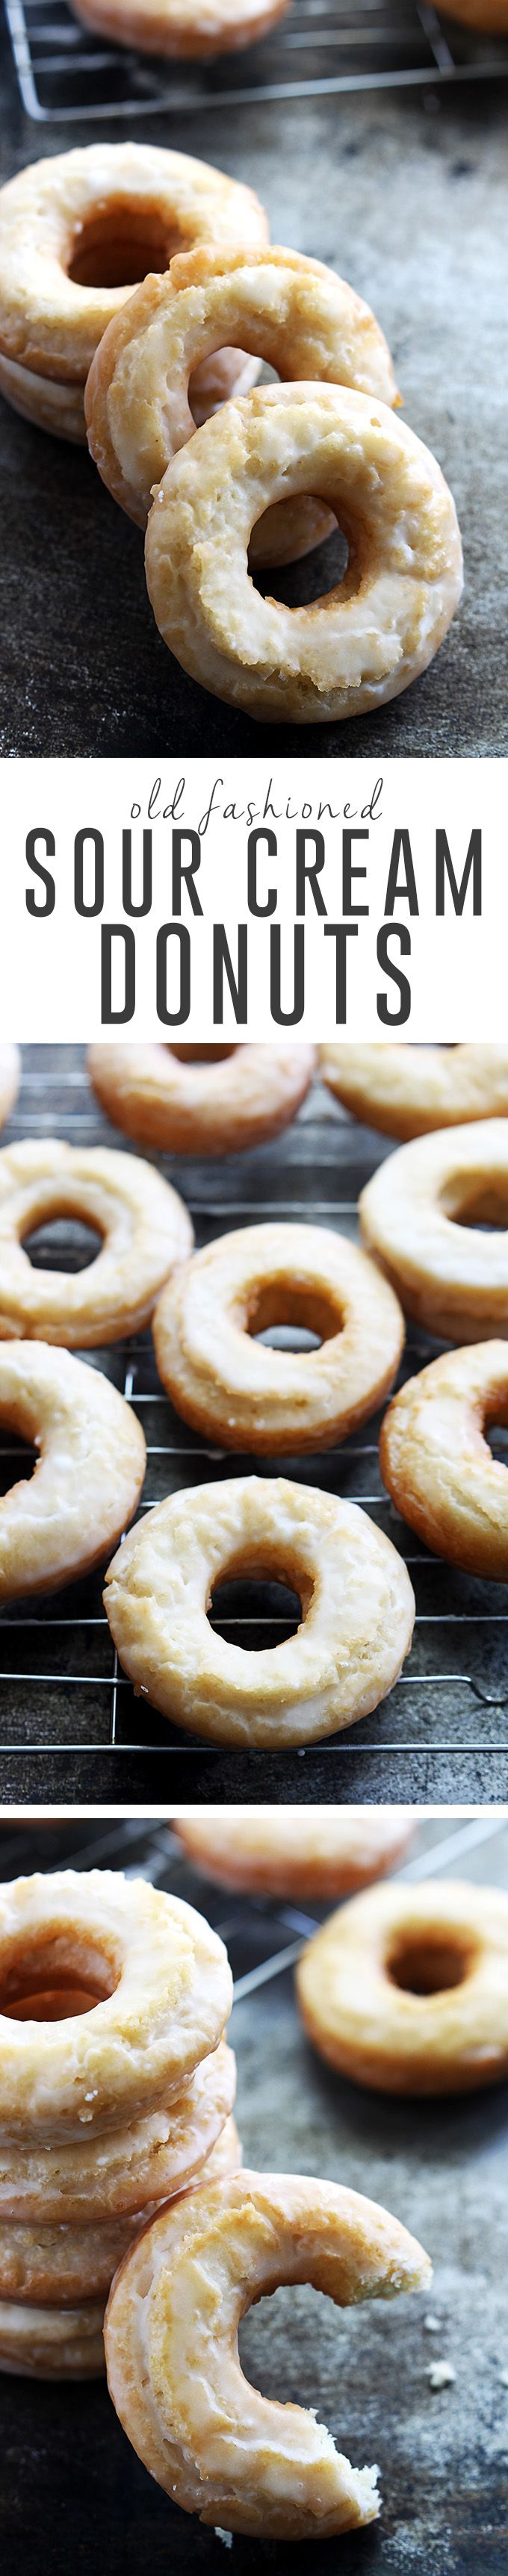 Homemade classic old fashioned sour cream donuts dipped in vanilla glaze. | Creme de la Crumb